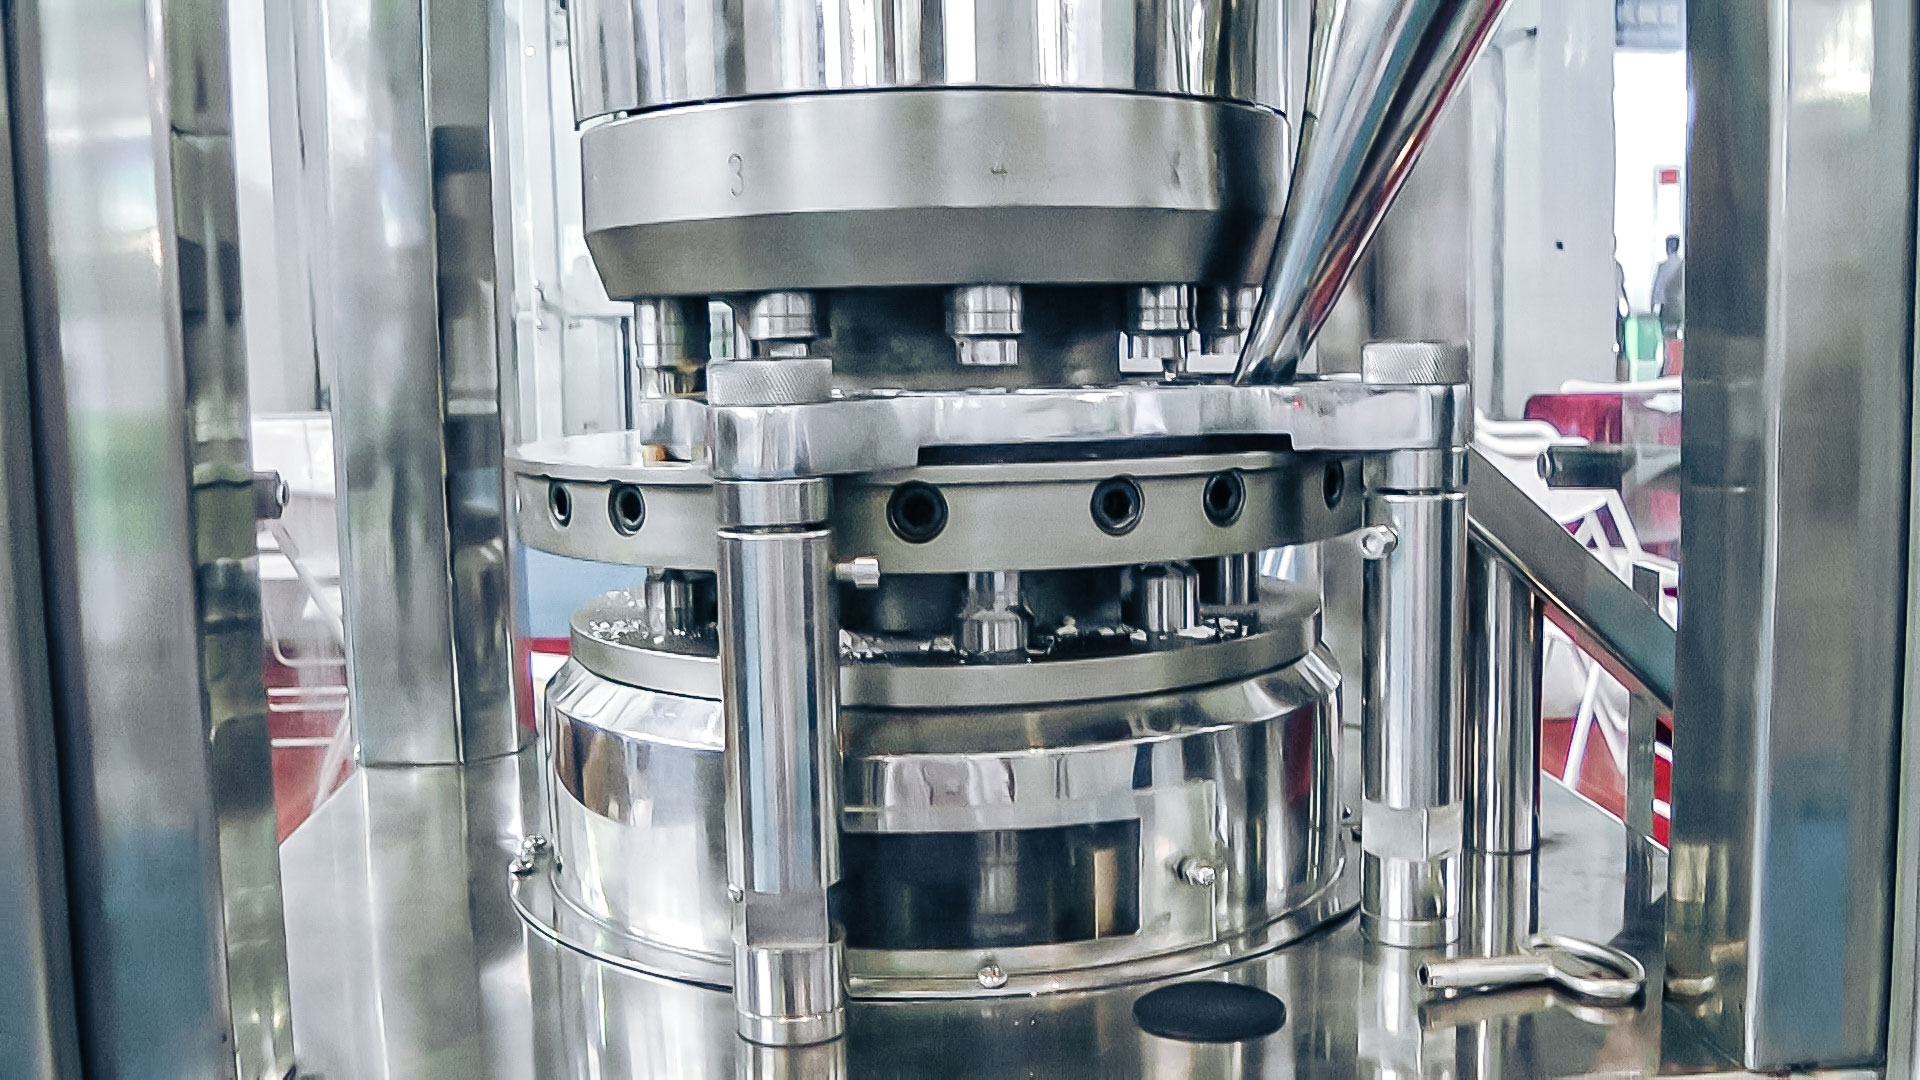 Automatic powder pressing equipment for tablet production in pharmaceutical production